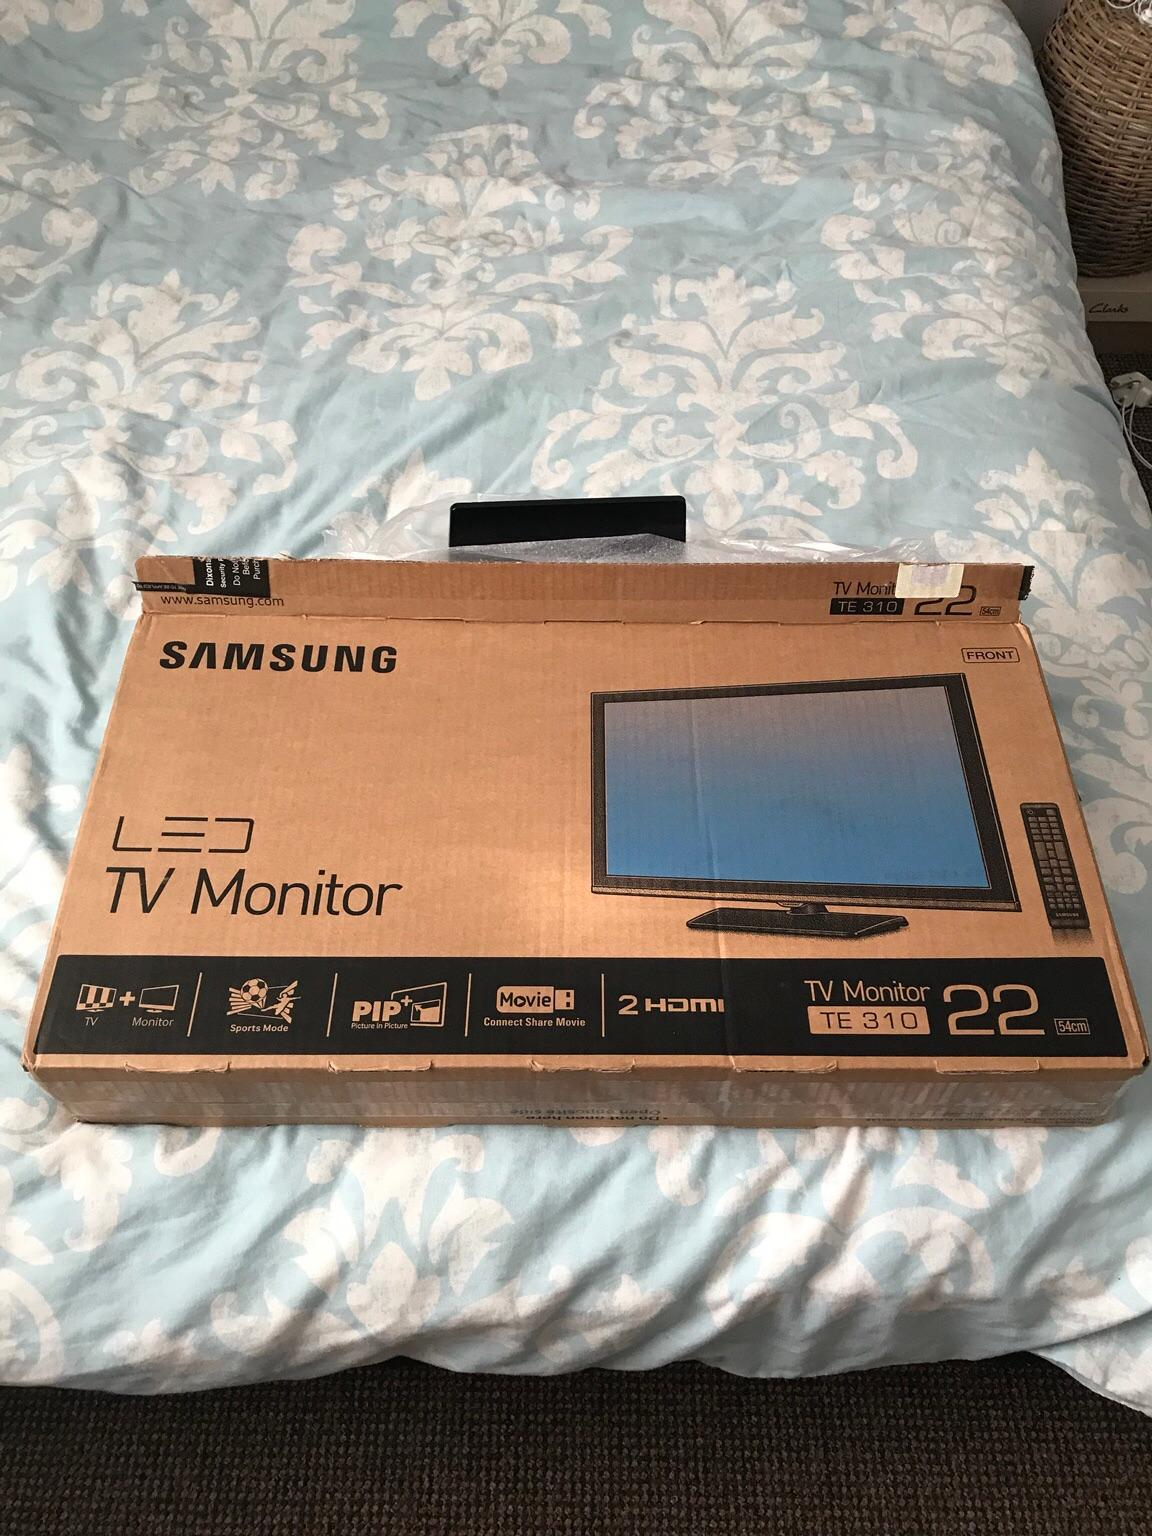 TV monitor - Samsung TE310 22